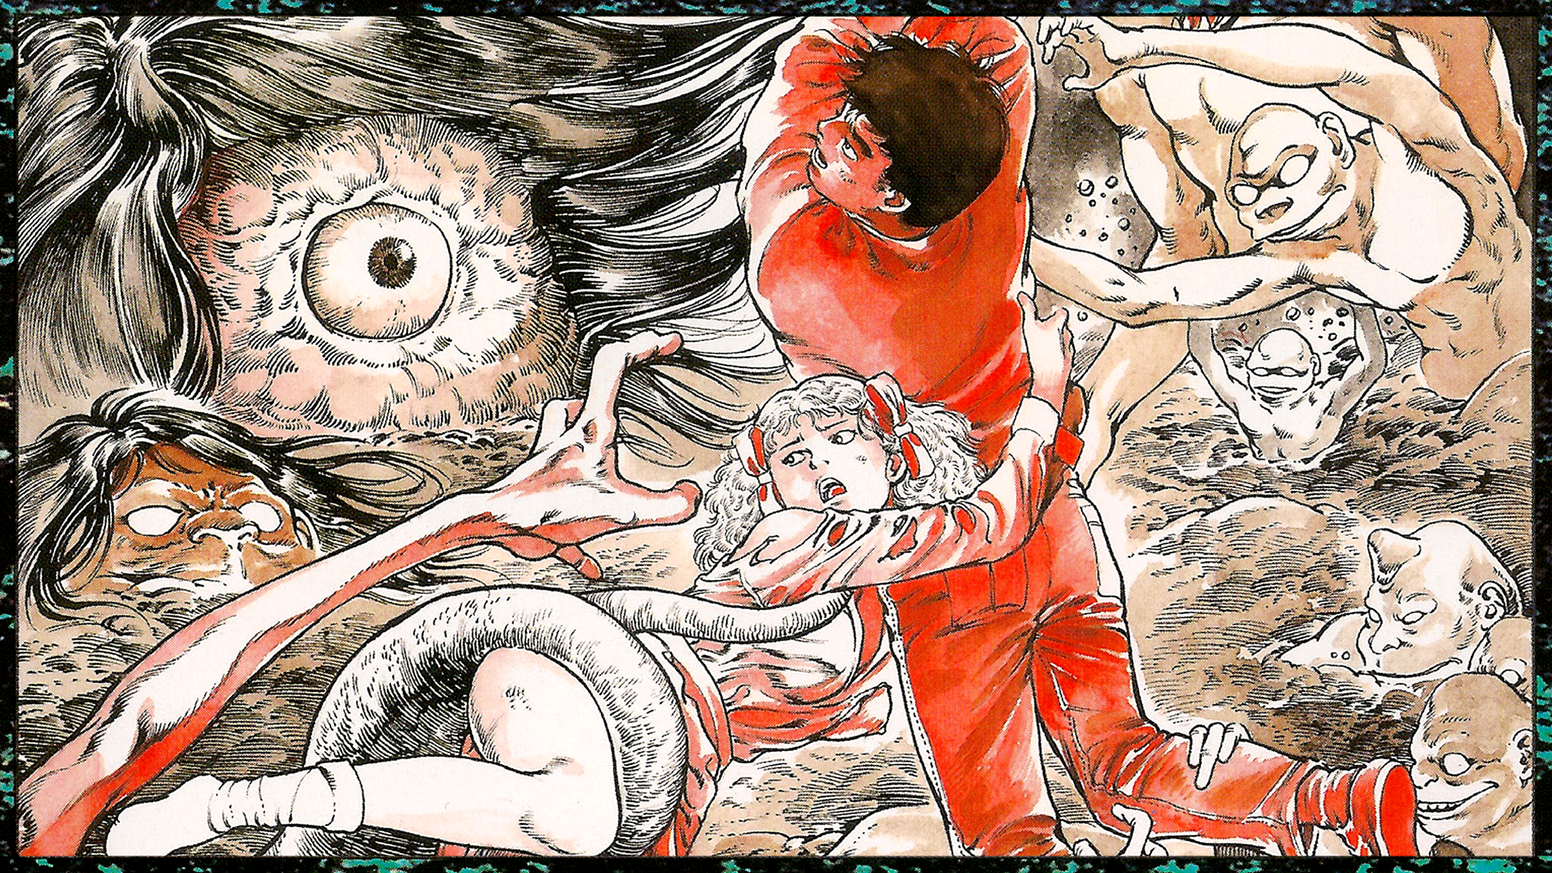 We've teamed up with Toshio Maeda to publish a completely remastered edition of Urotsukidoji - Legend of the Overfiend.